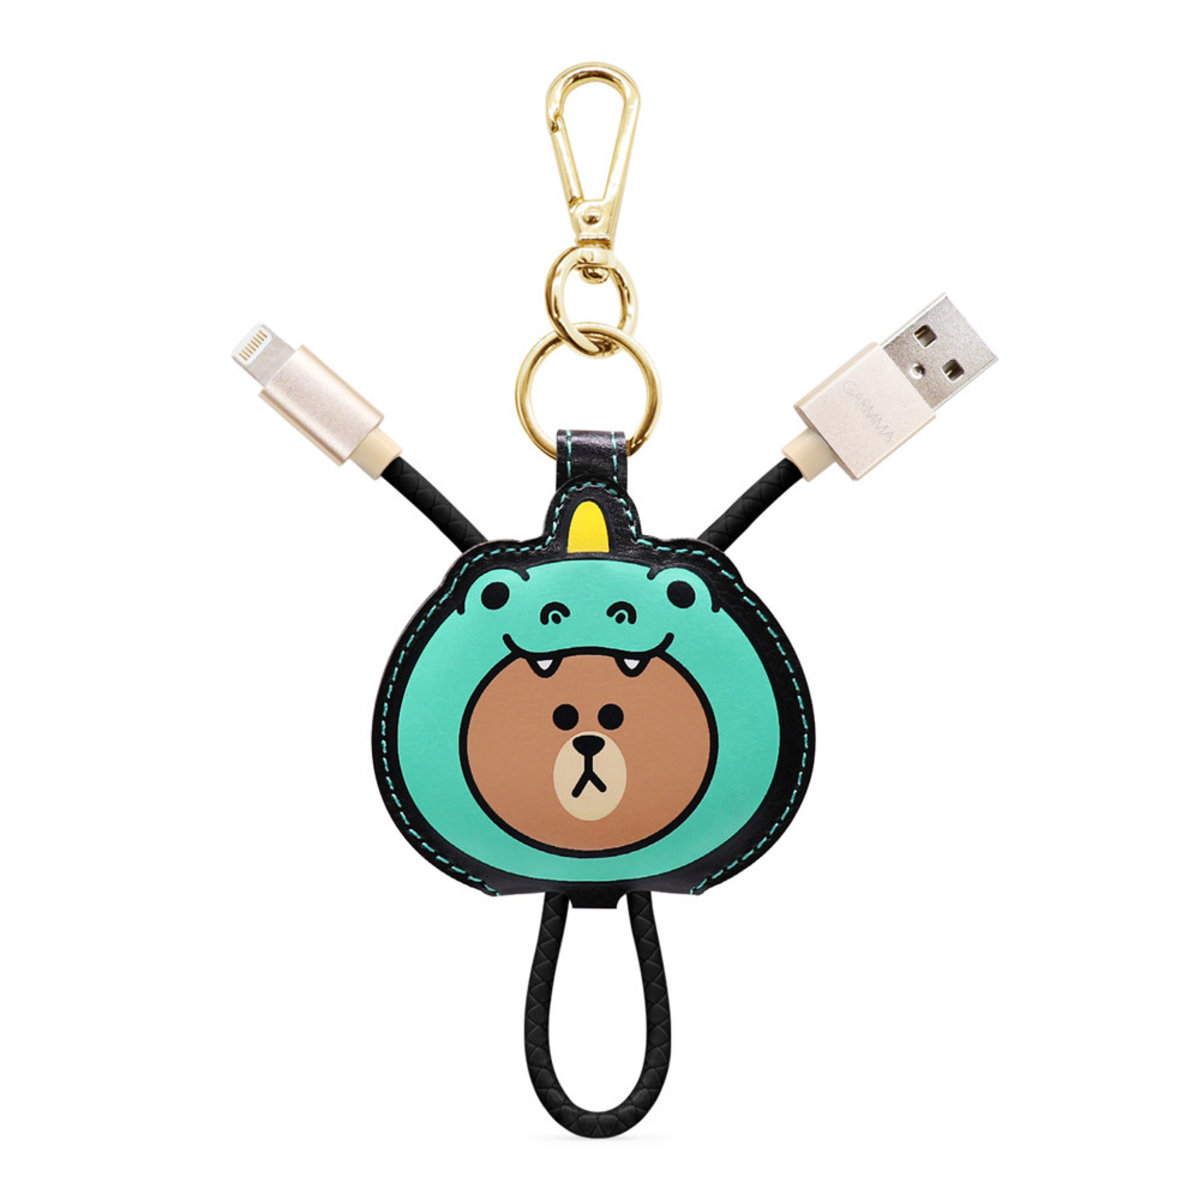 LINE FRIENDS Apple Lightning (MFI) Leather USB cable (67830)